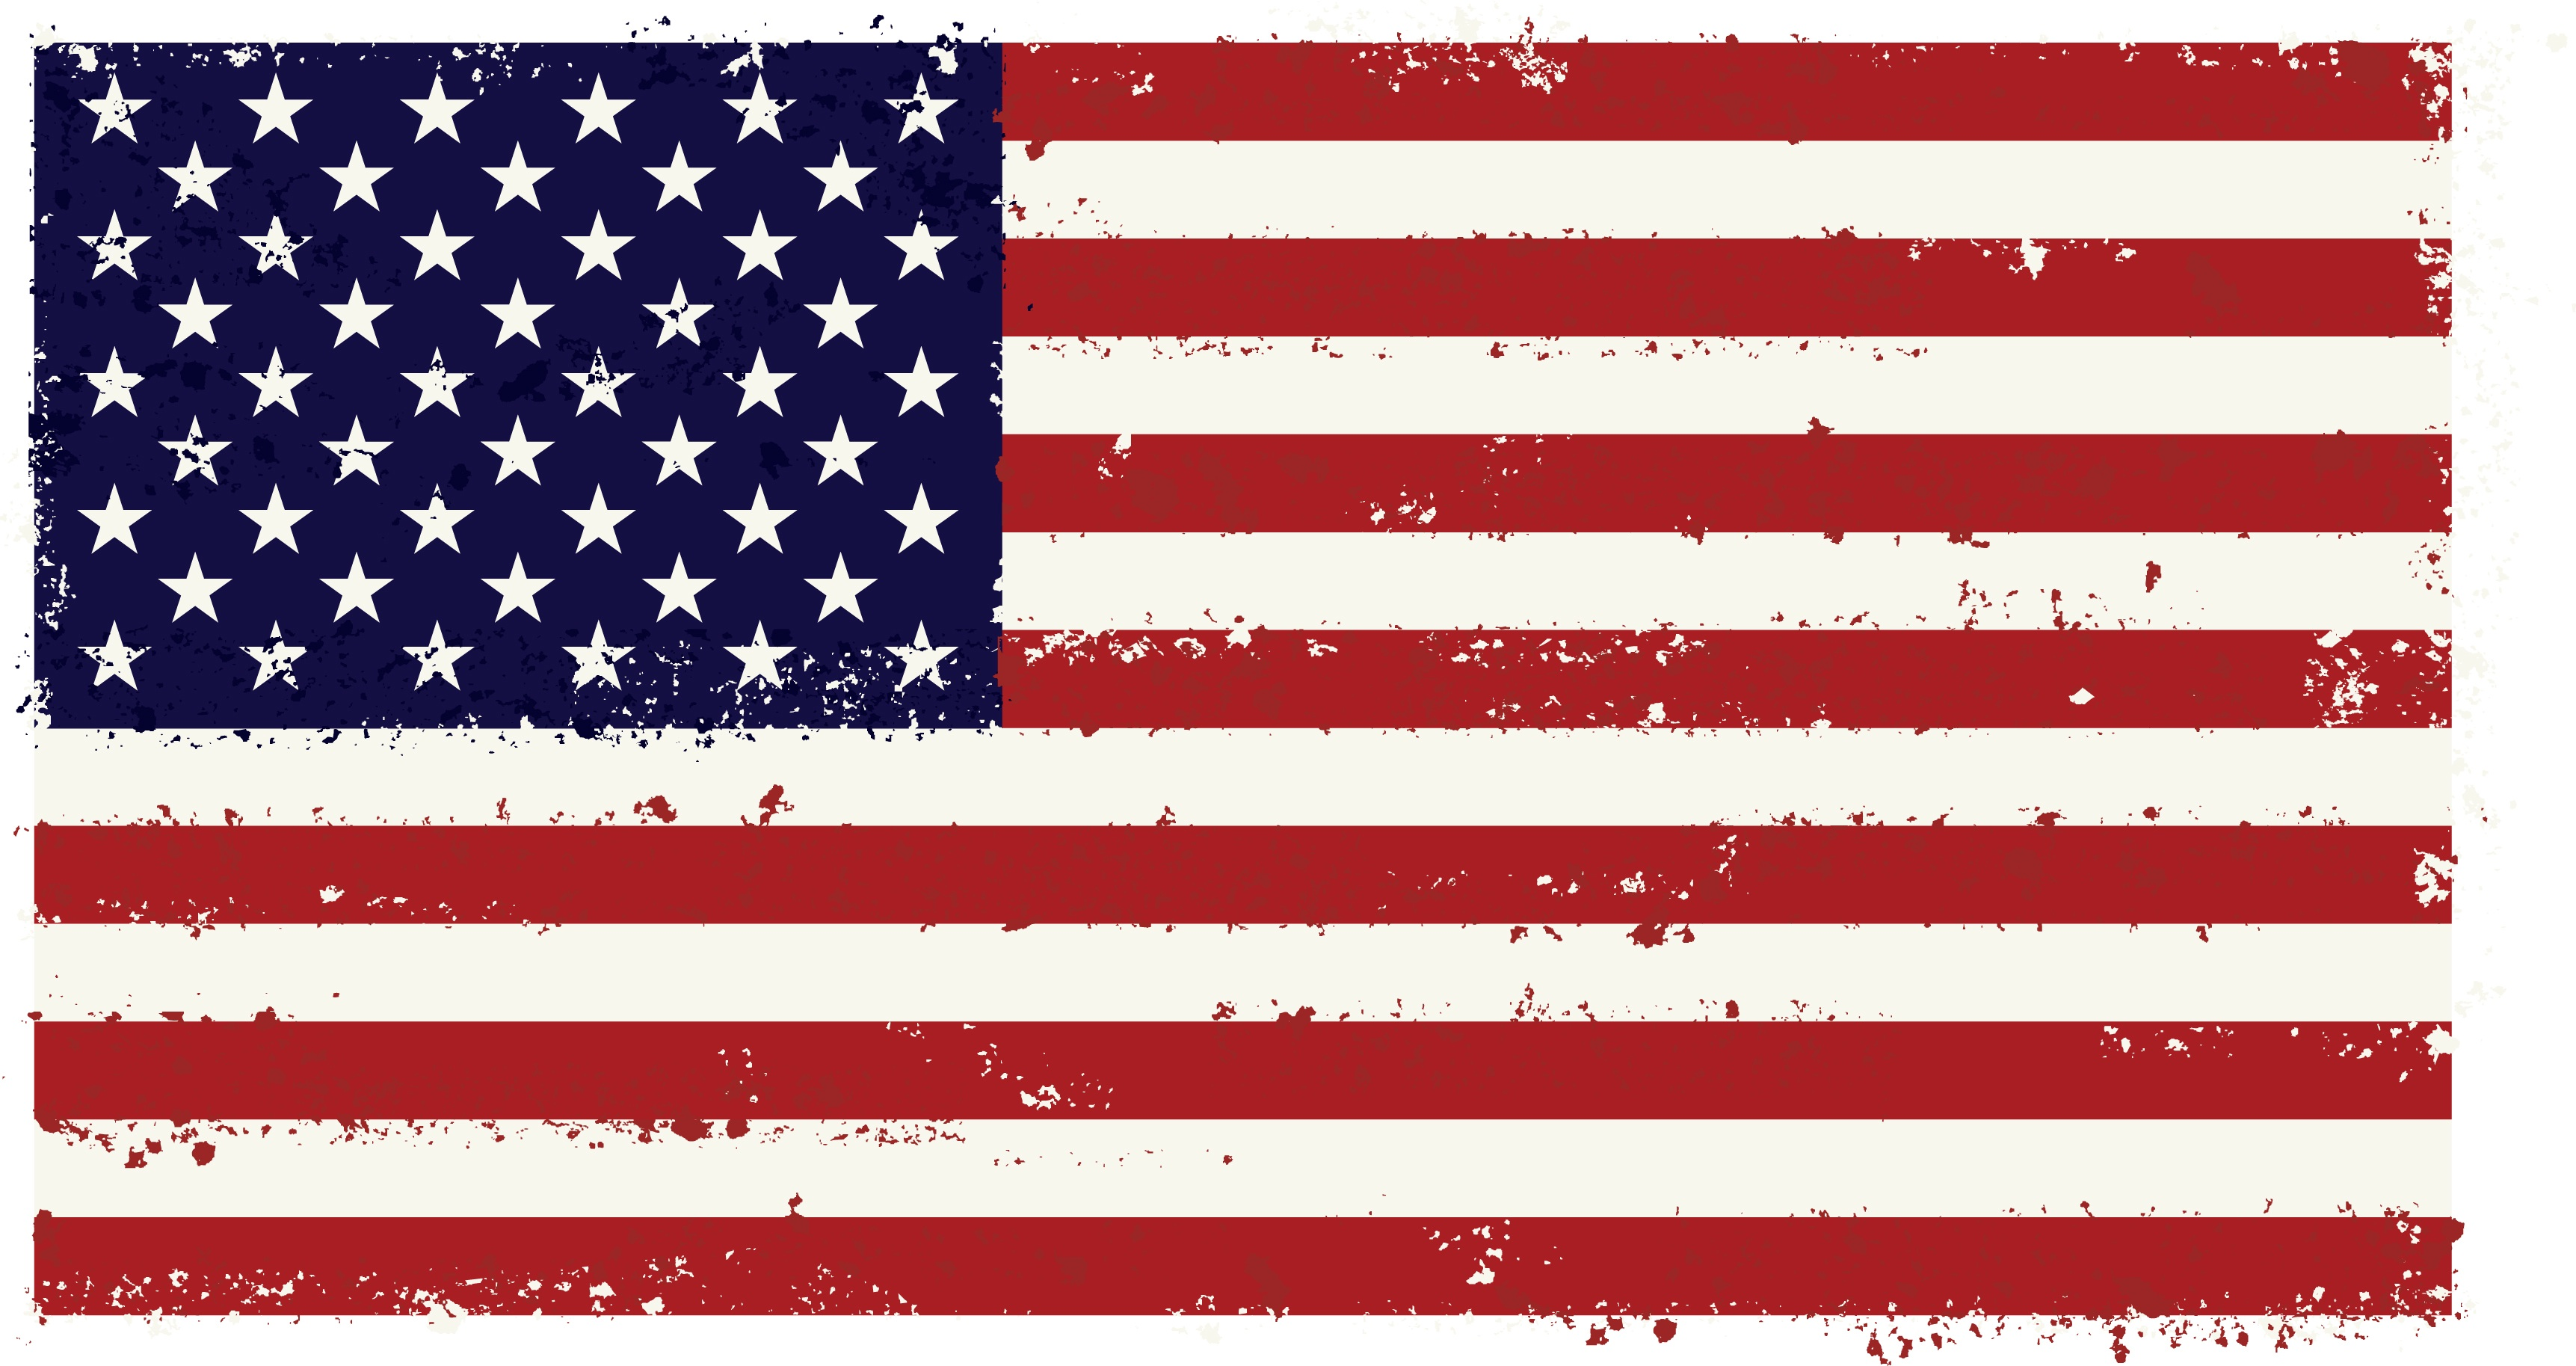 A Pic Of The American Flag.